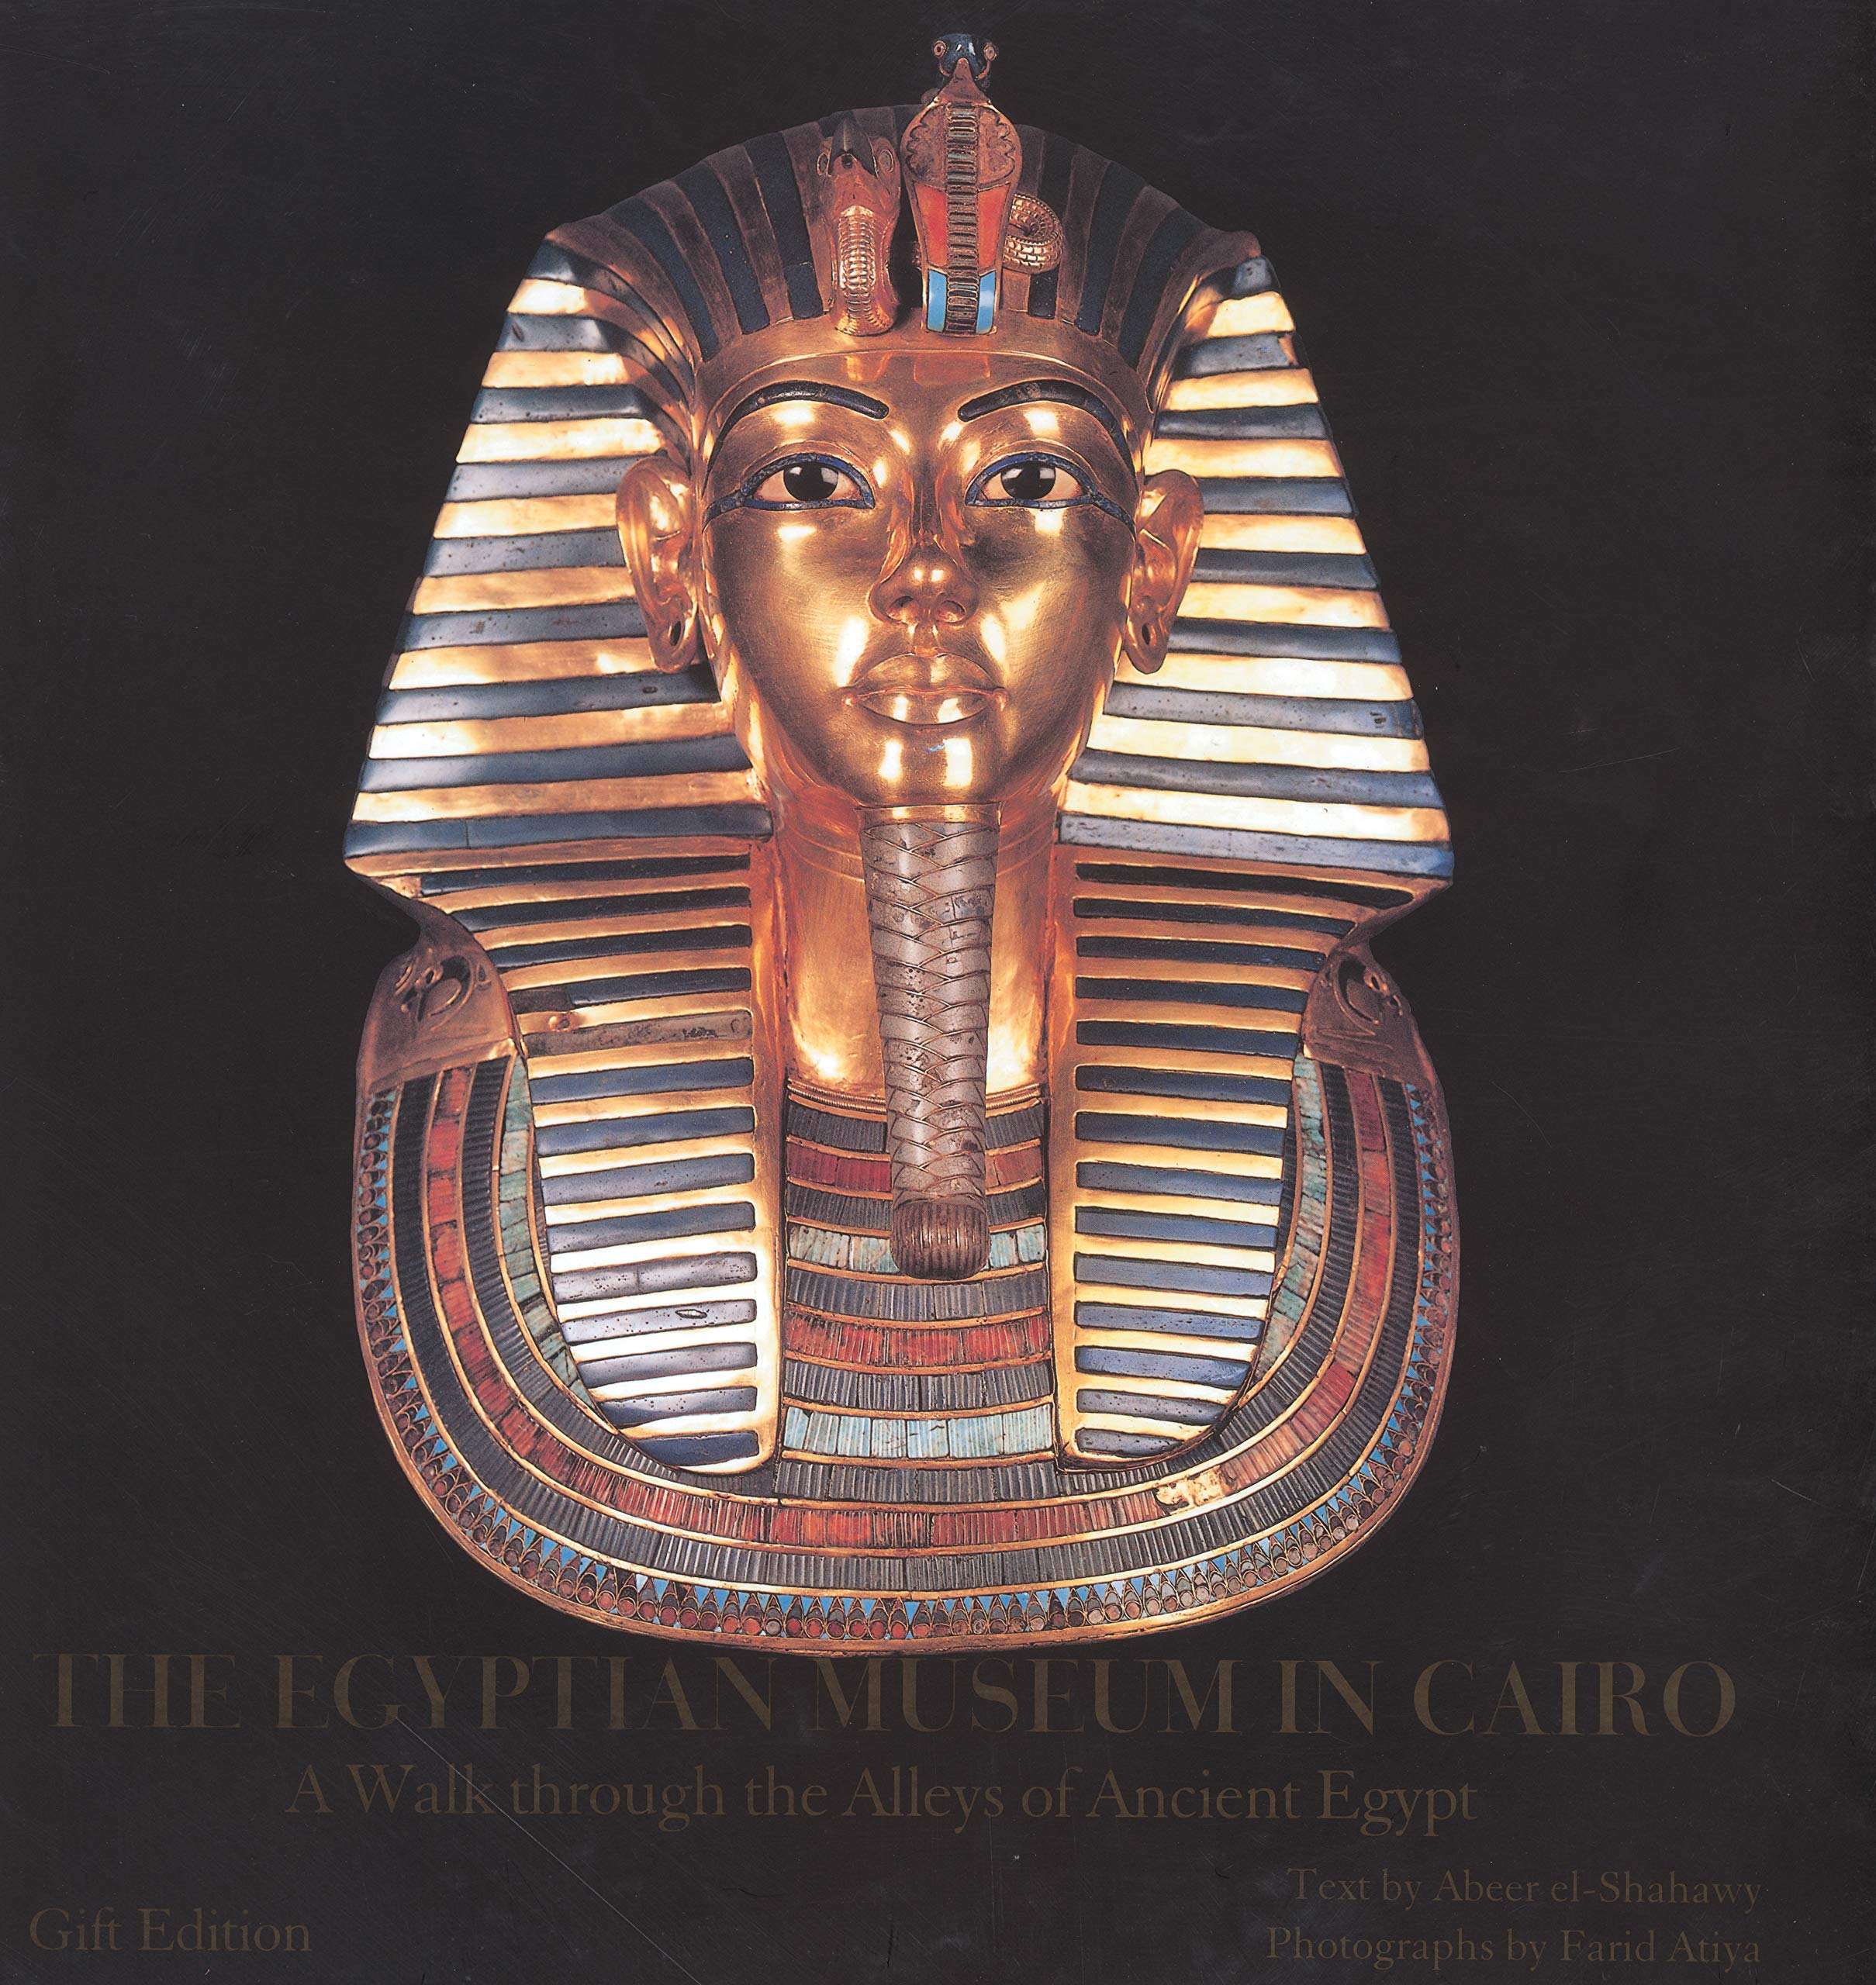 Download Egyptian Museum In Cairo: A Walk Though the Alleys of Ancient Egypt ebook